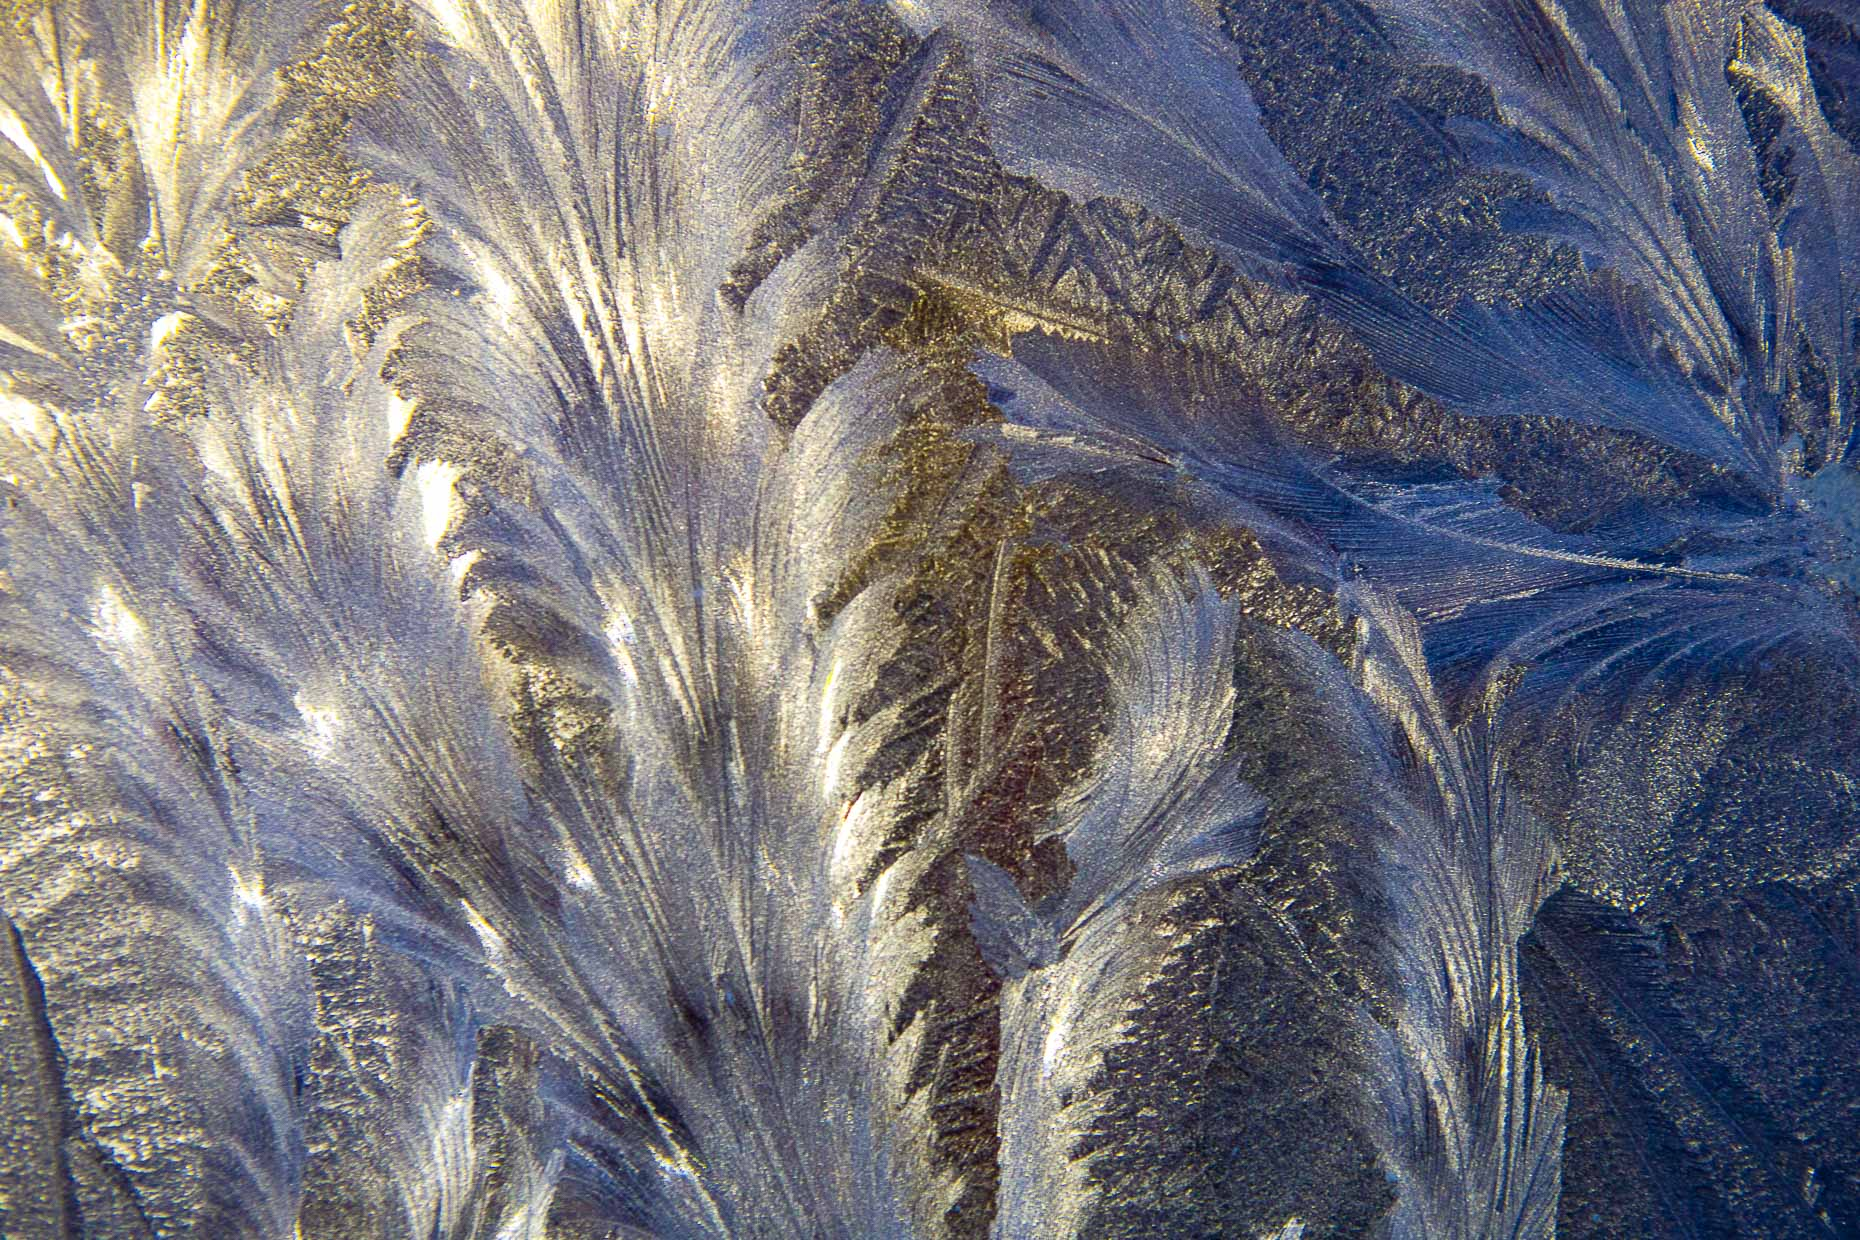 Ice Crystals, 024_201301177462